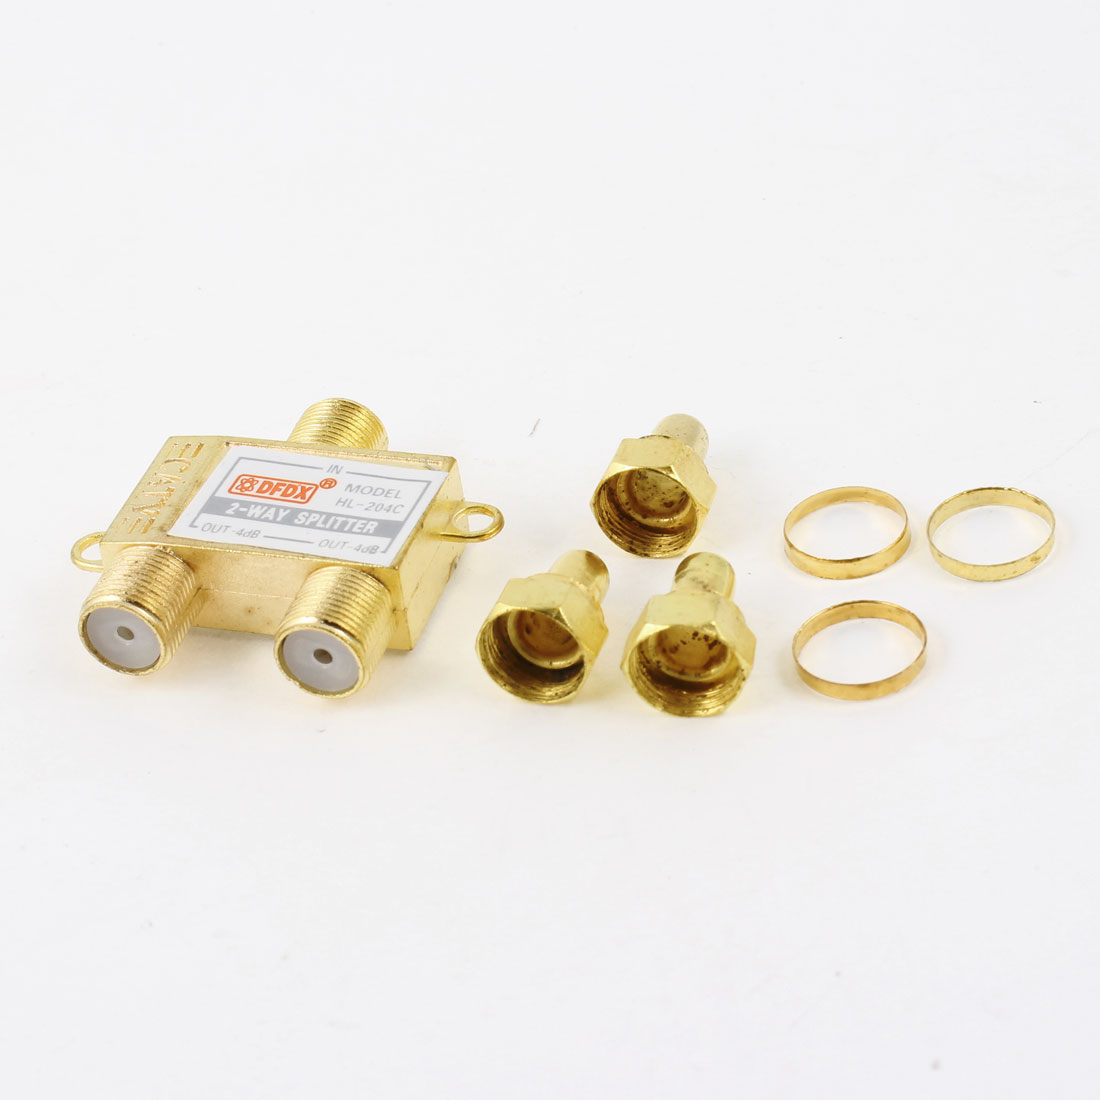 Gold Tone Signal CATV Directional Coupler 1 in 2 out 3 Way Splitter